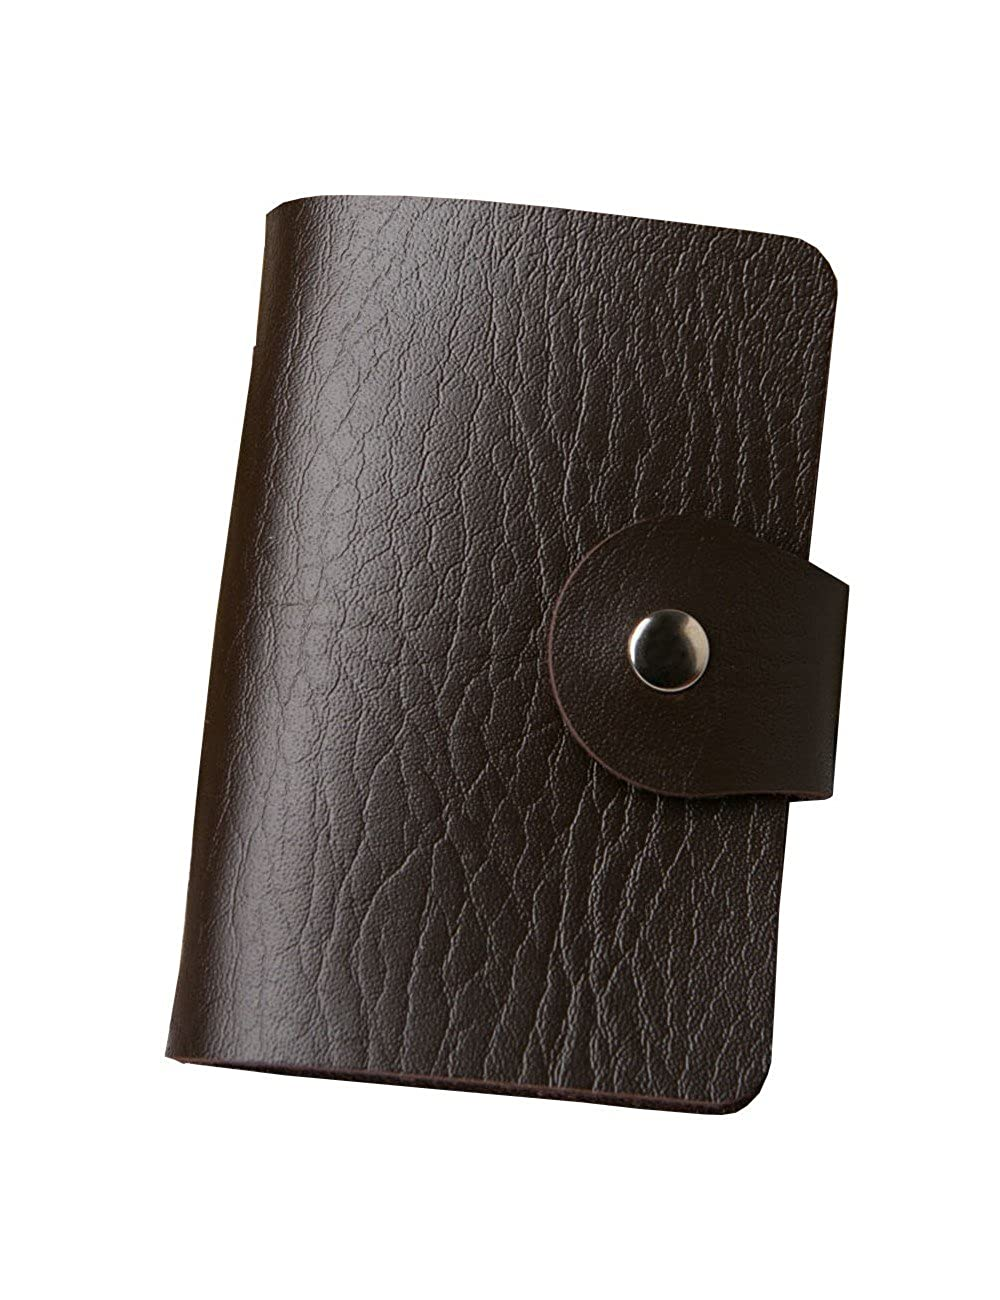 Euro Mond Credit Card Holder Wallet PU Leather Credit Card Case for Women Men KB01-GN